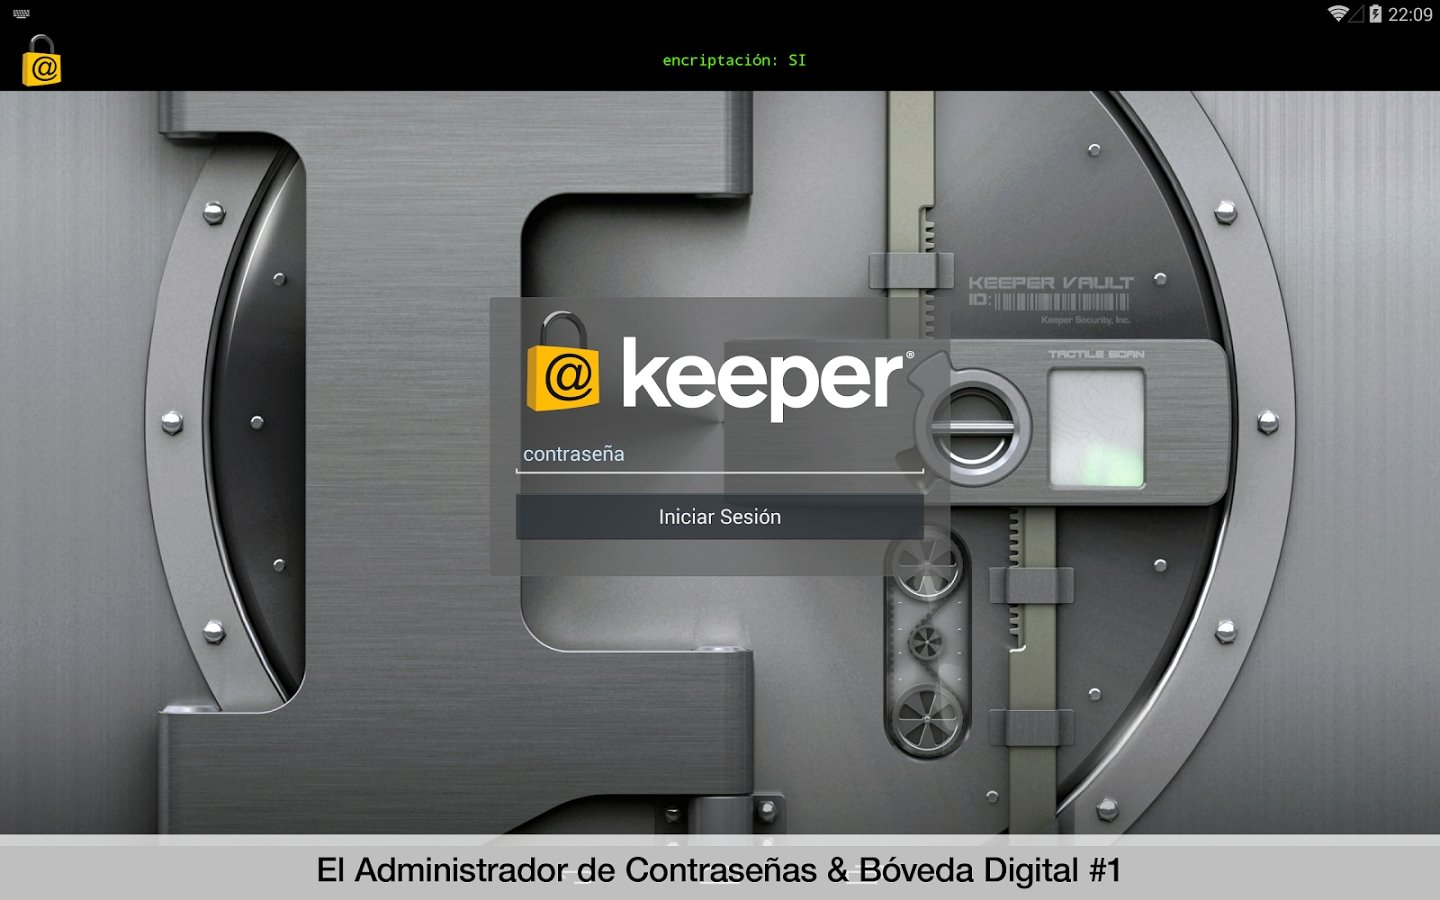 Keeper Android image 5